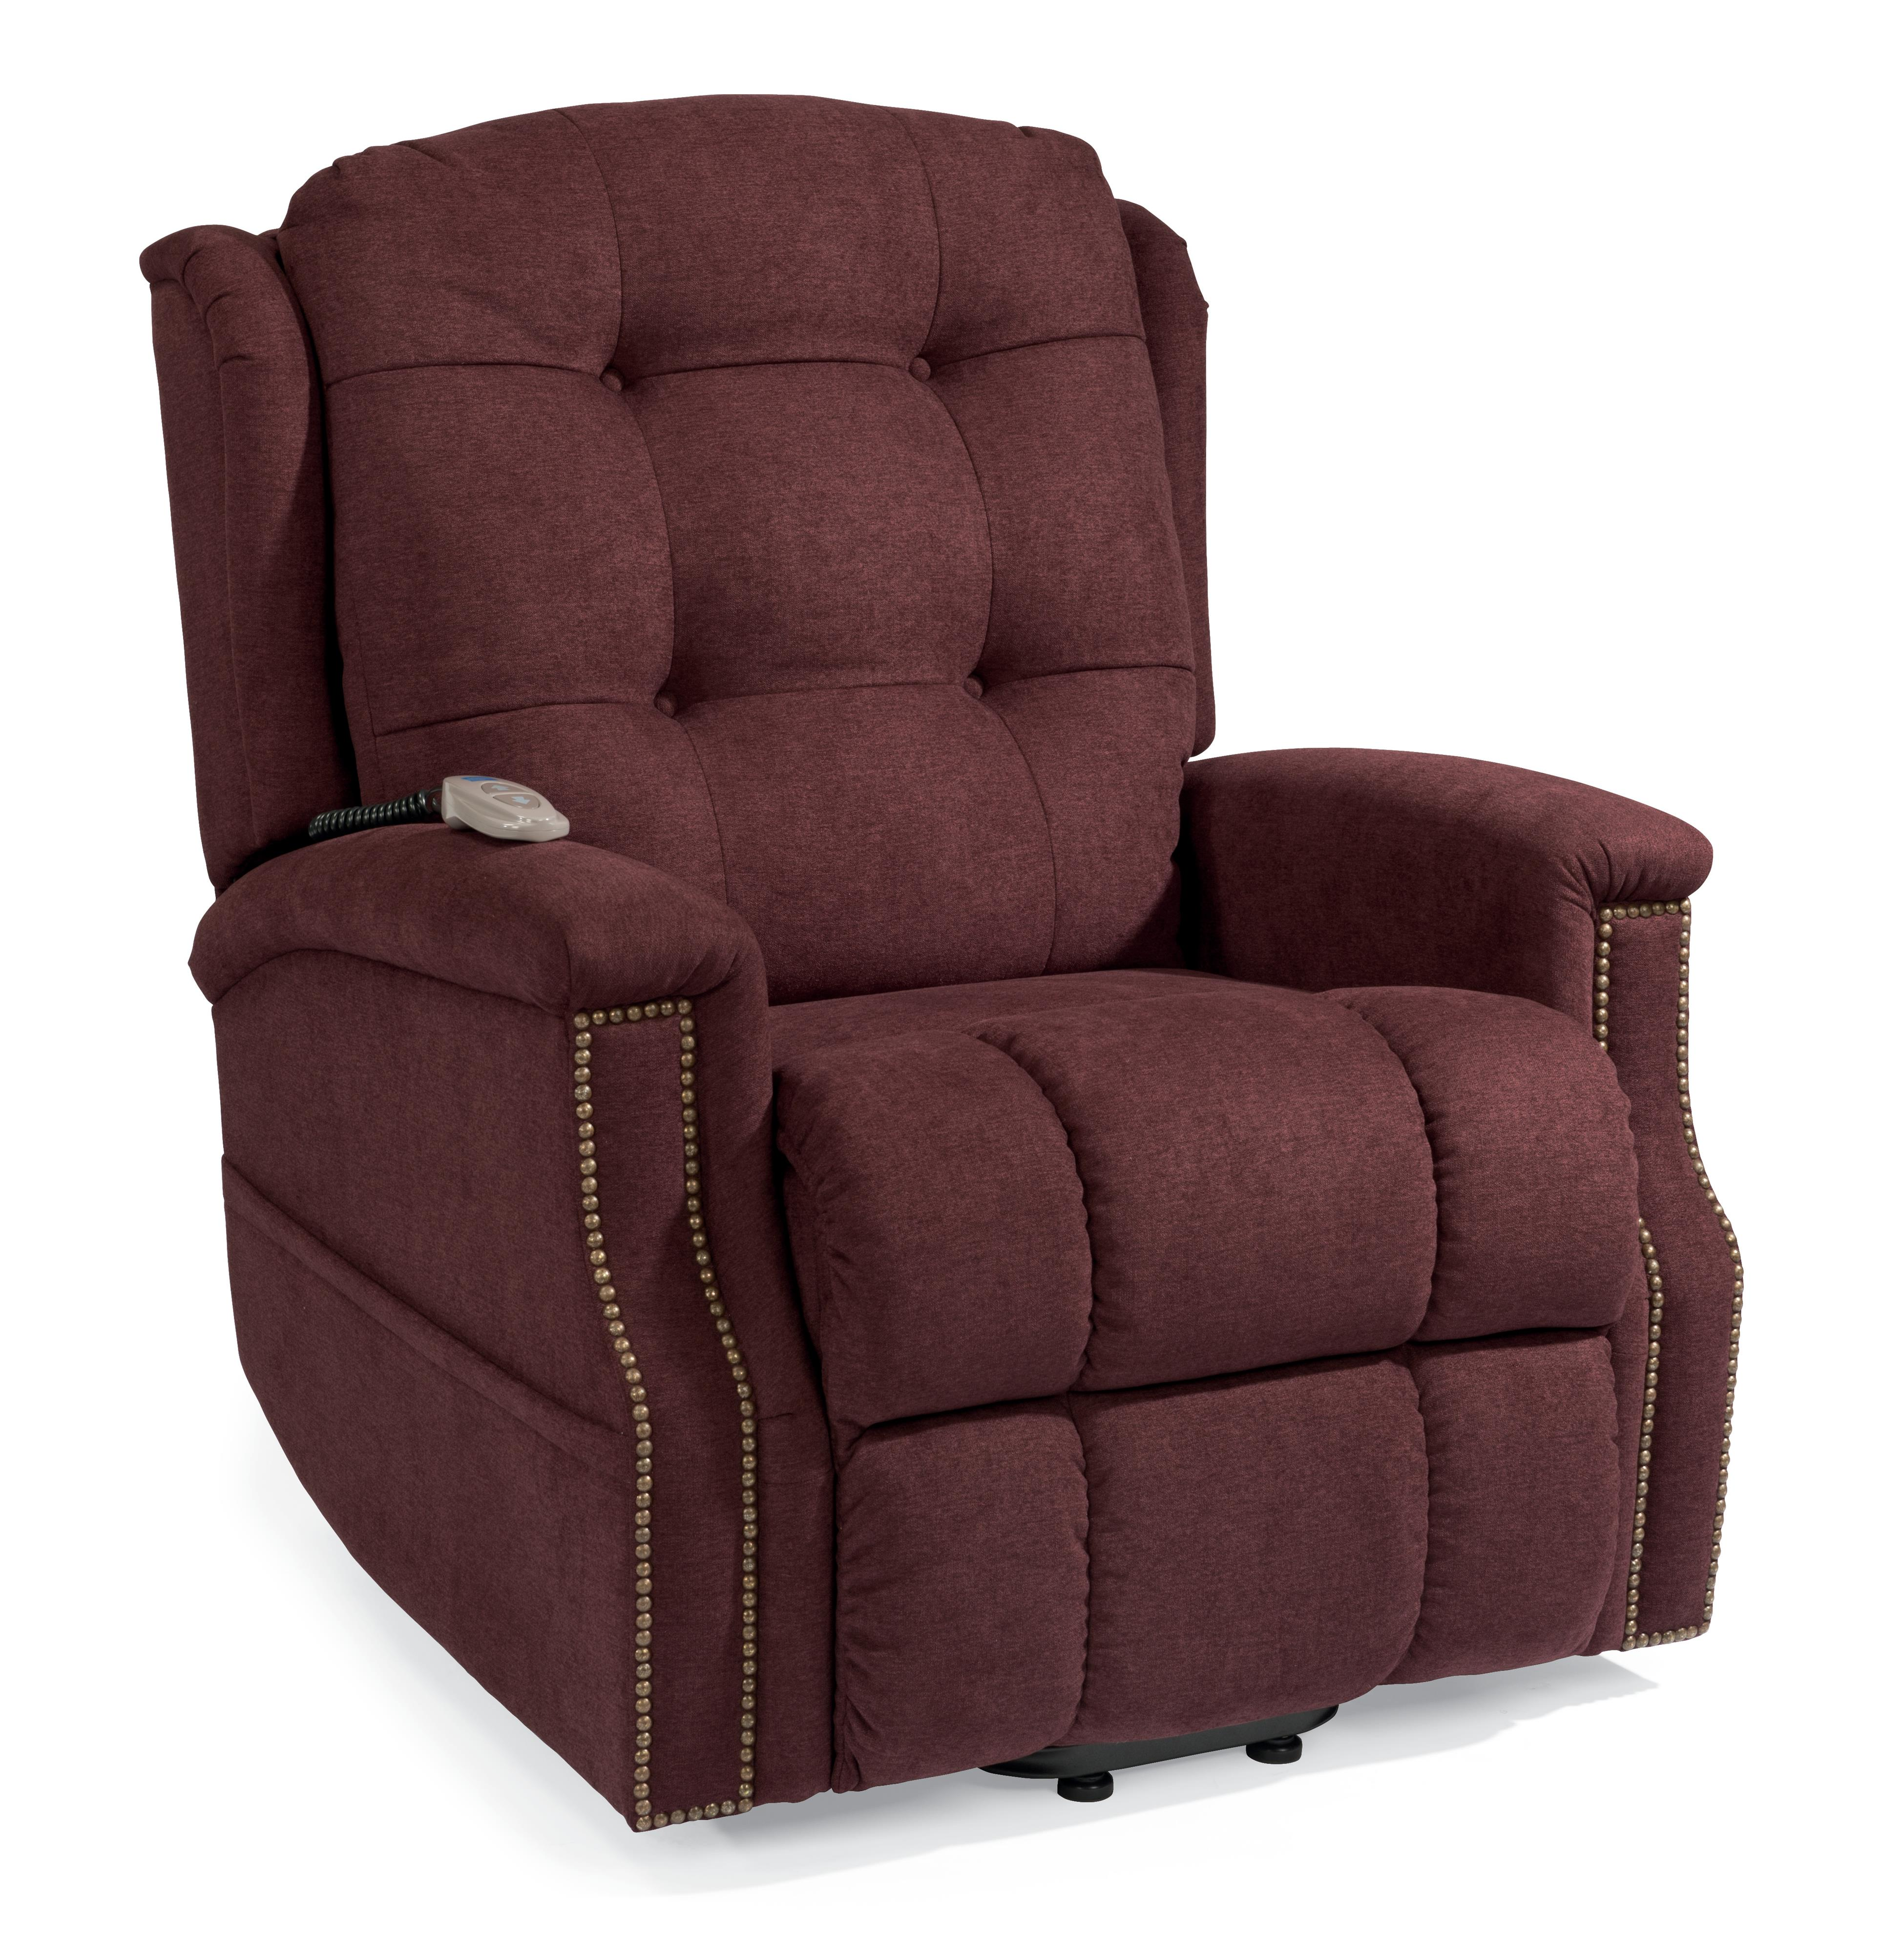 Flexsteel Latitudes Lift Chairs Alexander Lift Recliner - Item Number: 1901-55-414-62